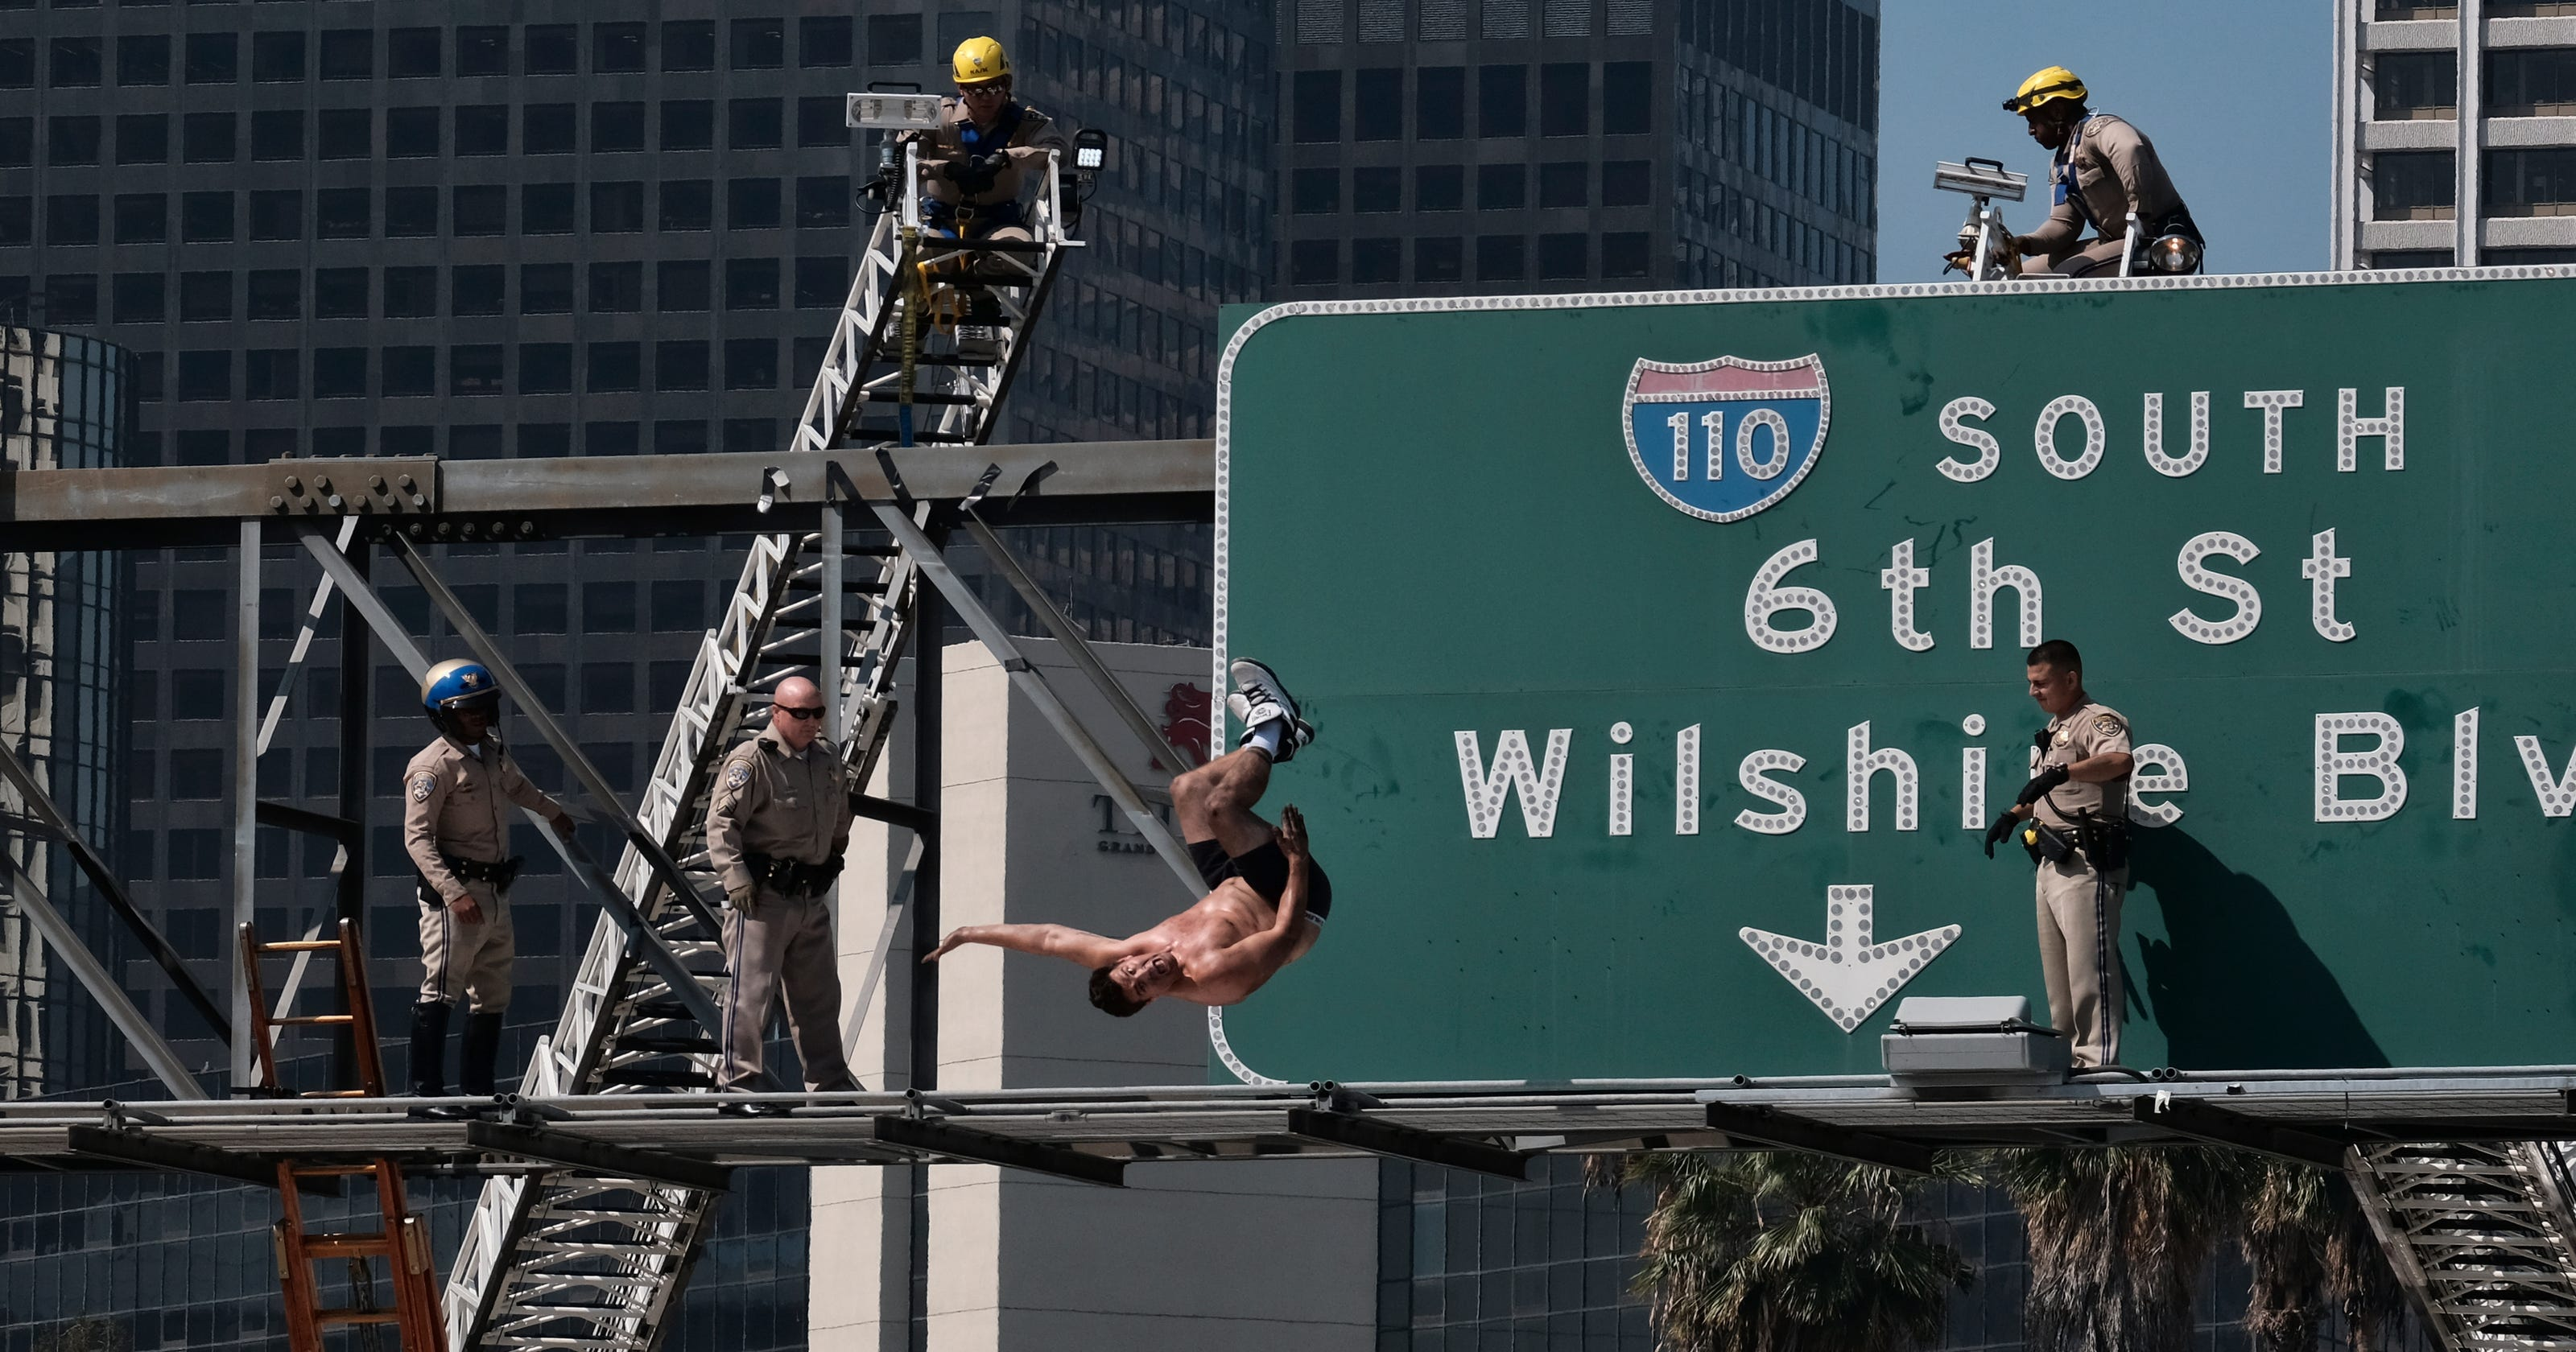 Nearly naked man on Los Angeles 110 freeway sign causes